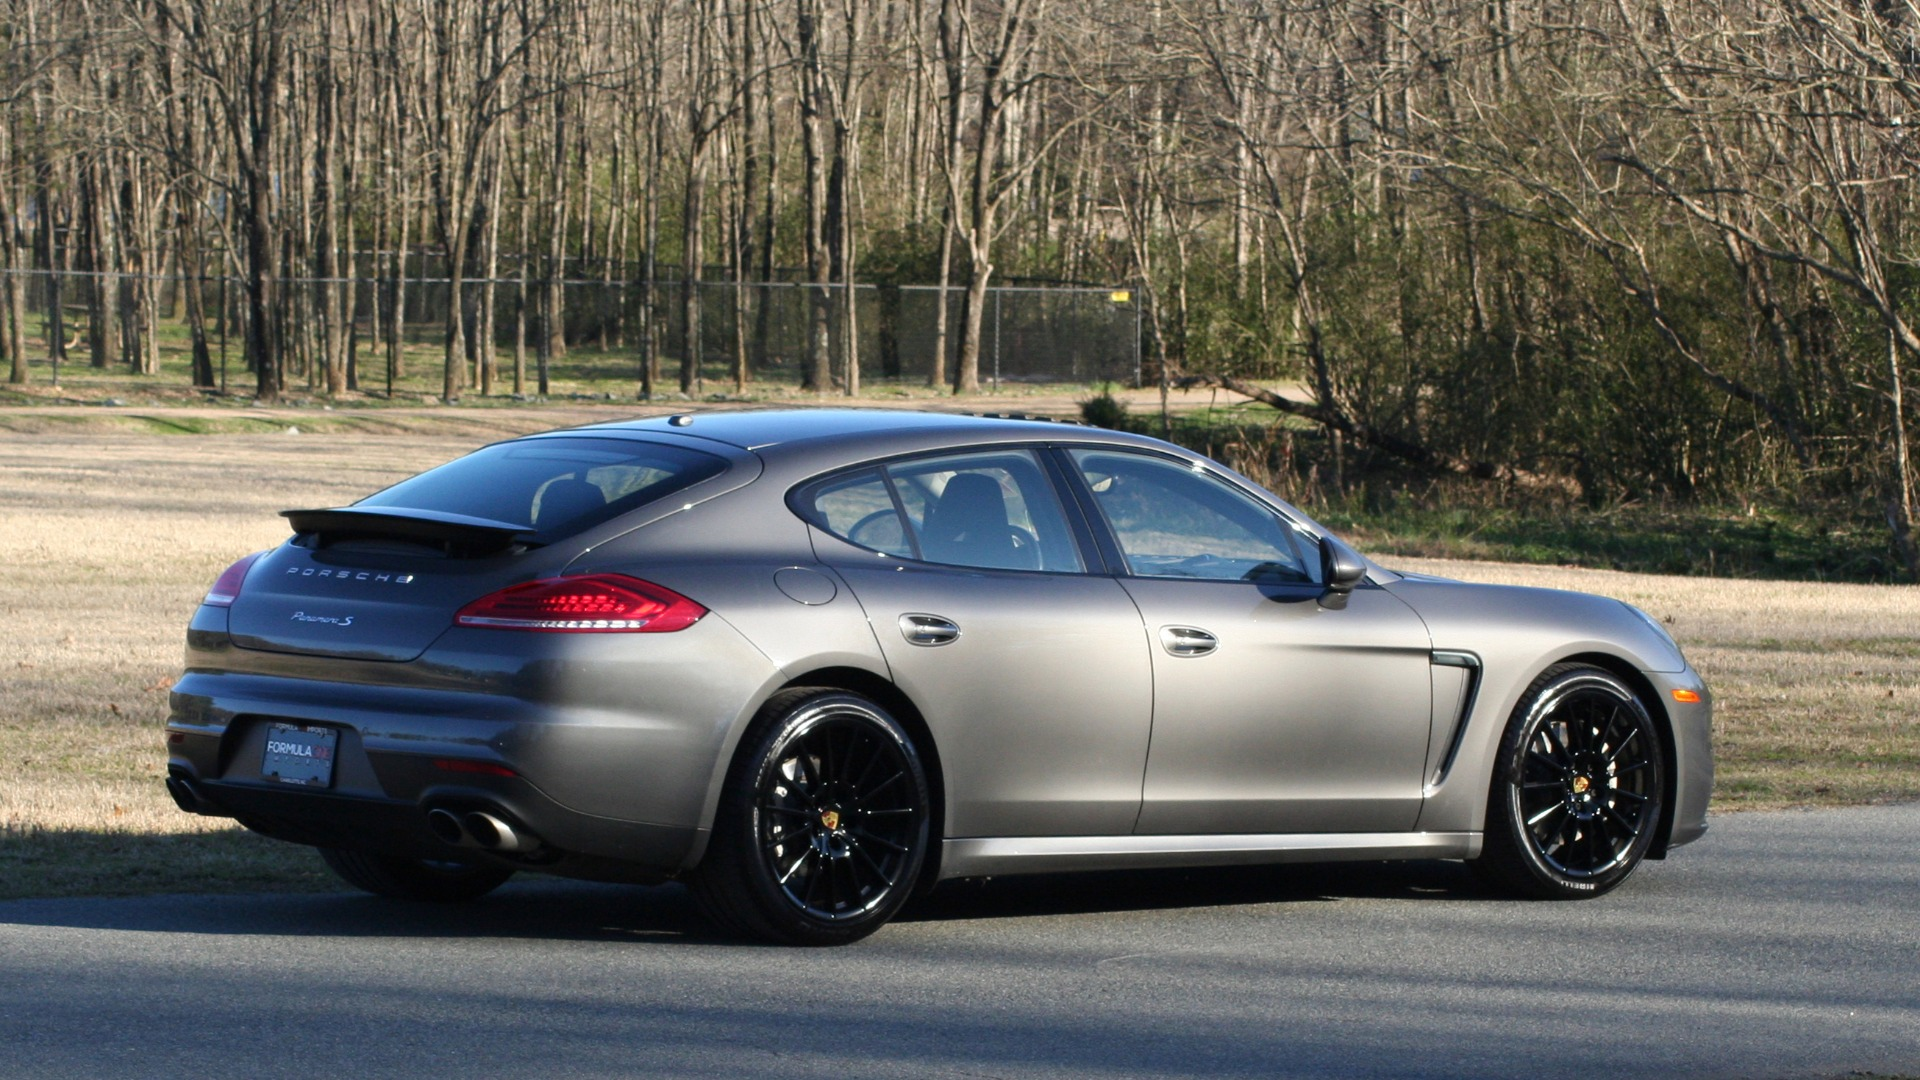 Used 2016 Porsche PANAMERA S / TURBO V6 / PDK / NAV / BOSE / SNRF / LDW / REARVIEW for sale Sold at Formula Imports in Charlotte NC 28227 14